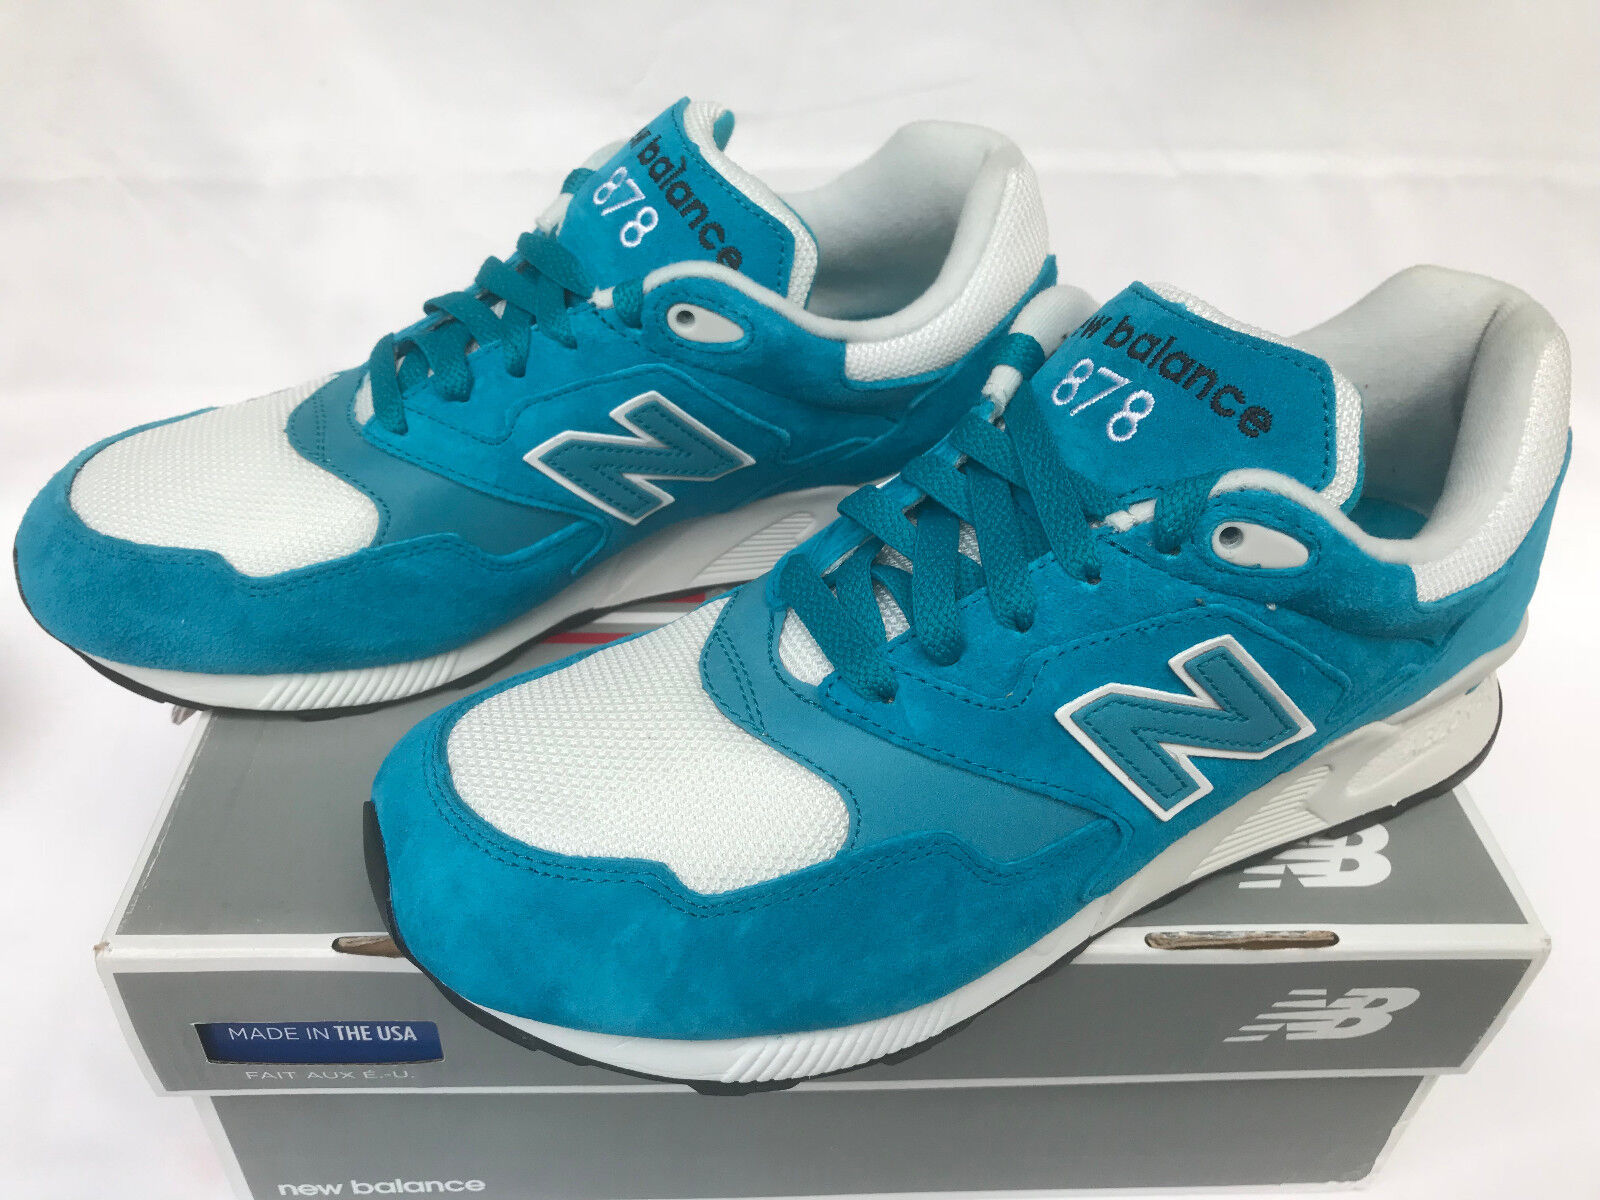 New Balance ML878RSB bluee Suede 878 Stability Marathon Running shoes Men's 9.5 D